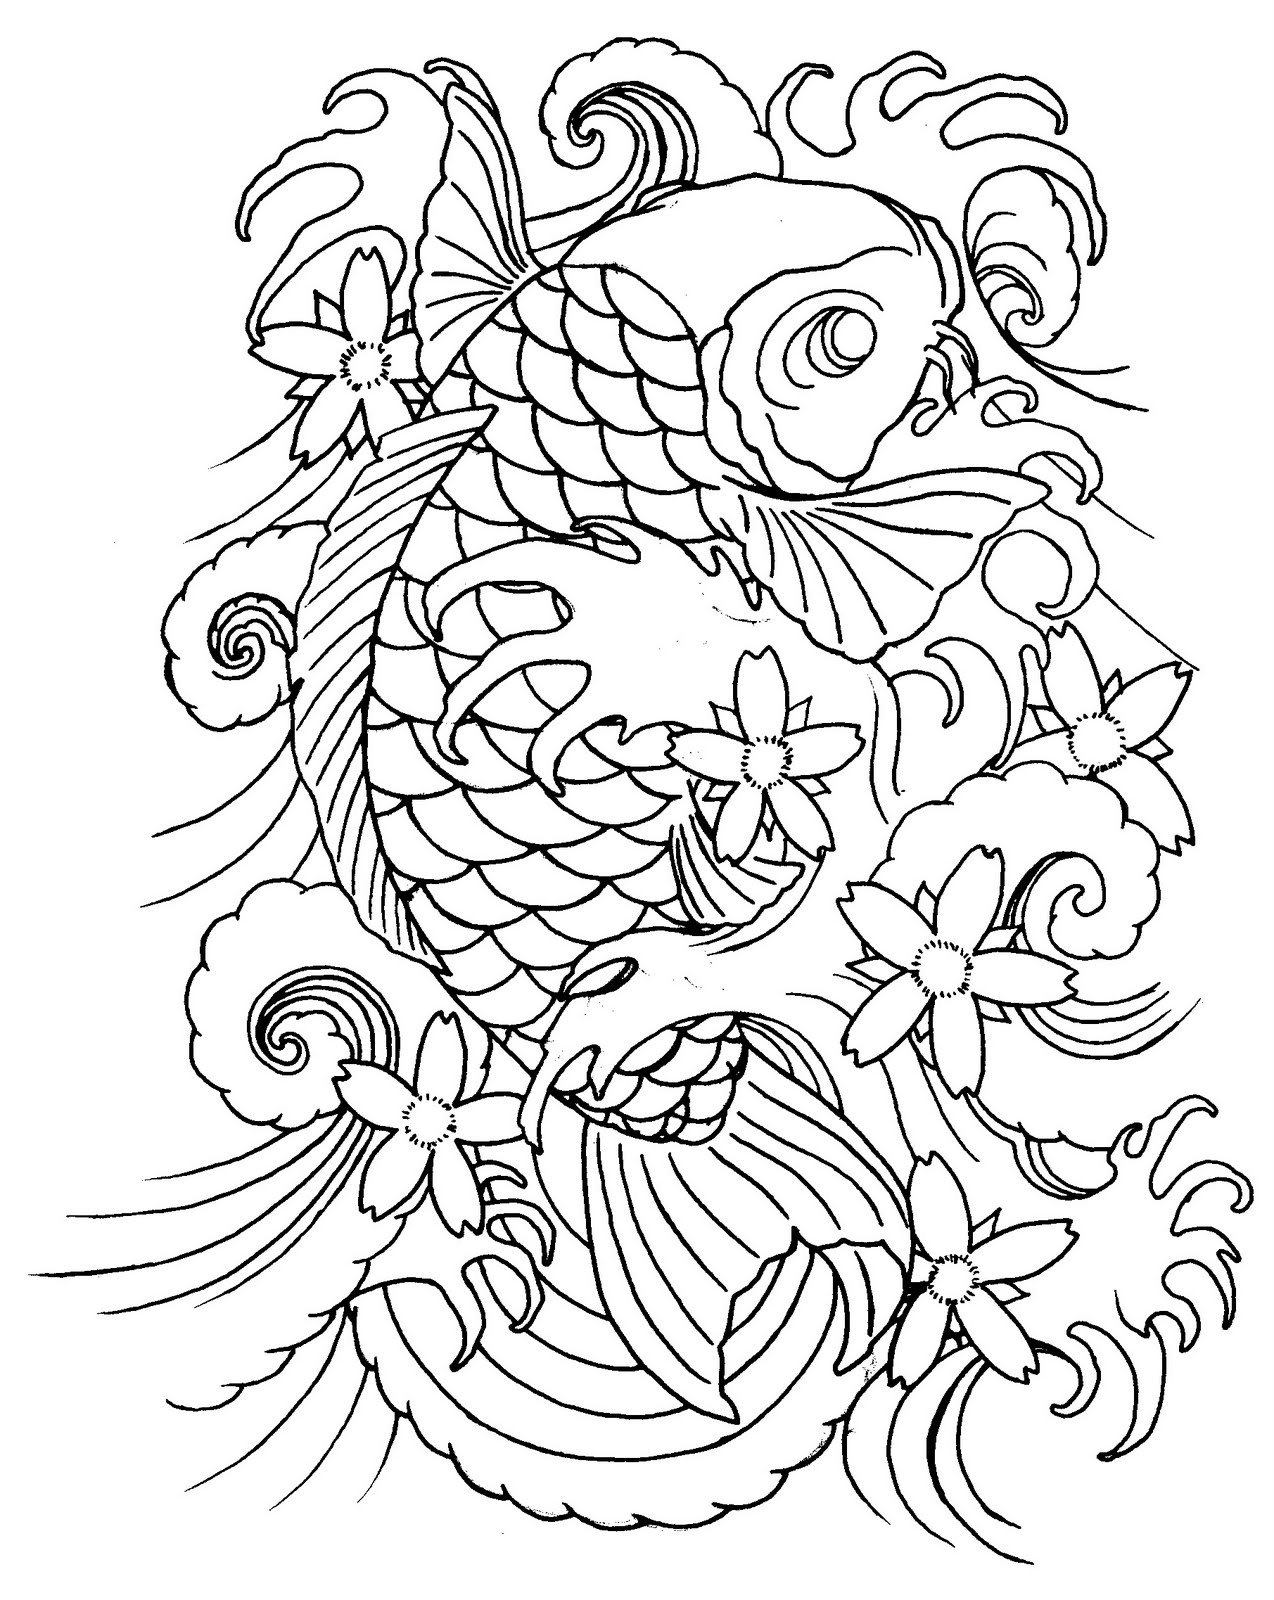 Tattoo Design Line Art : Koi tattoos designs ideas and meaning for you